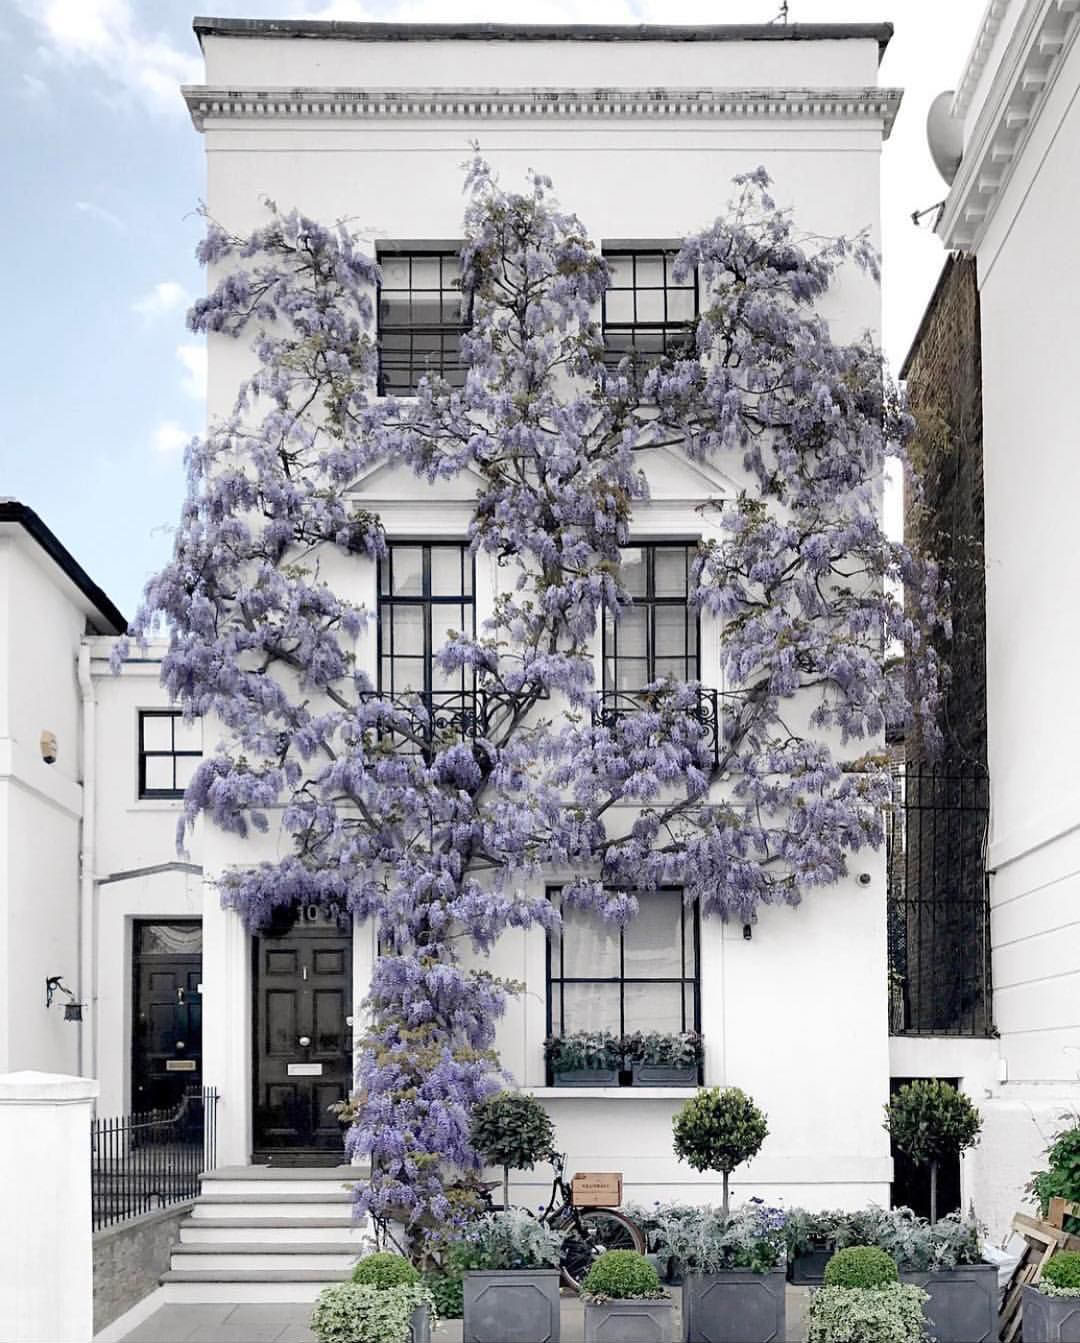 London Apartments Exterior: Wisteria Adds Charming Curb Appeal To London Townhouse